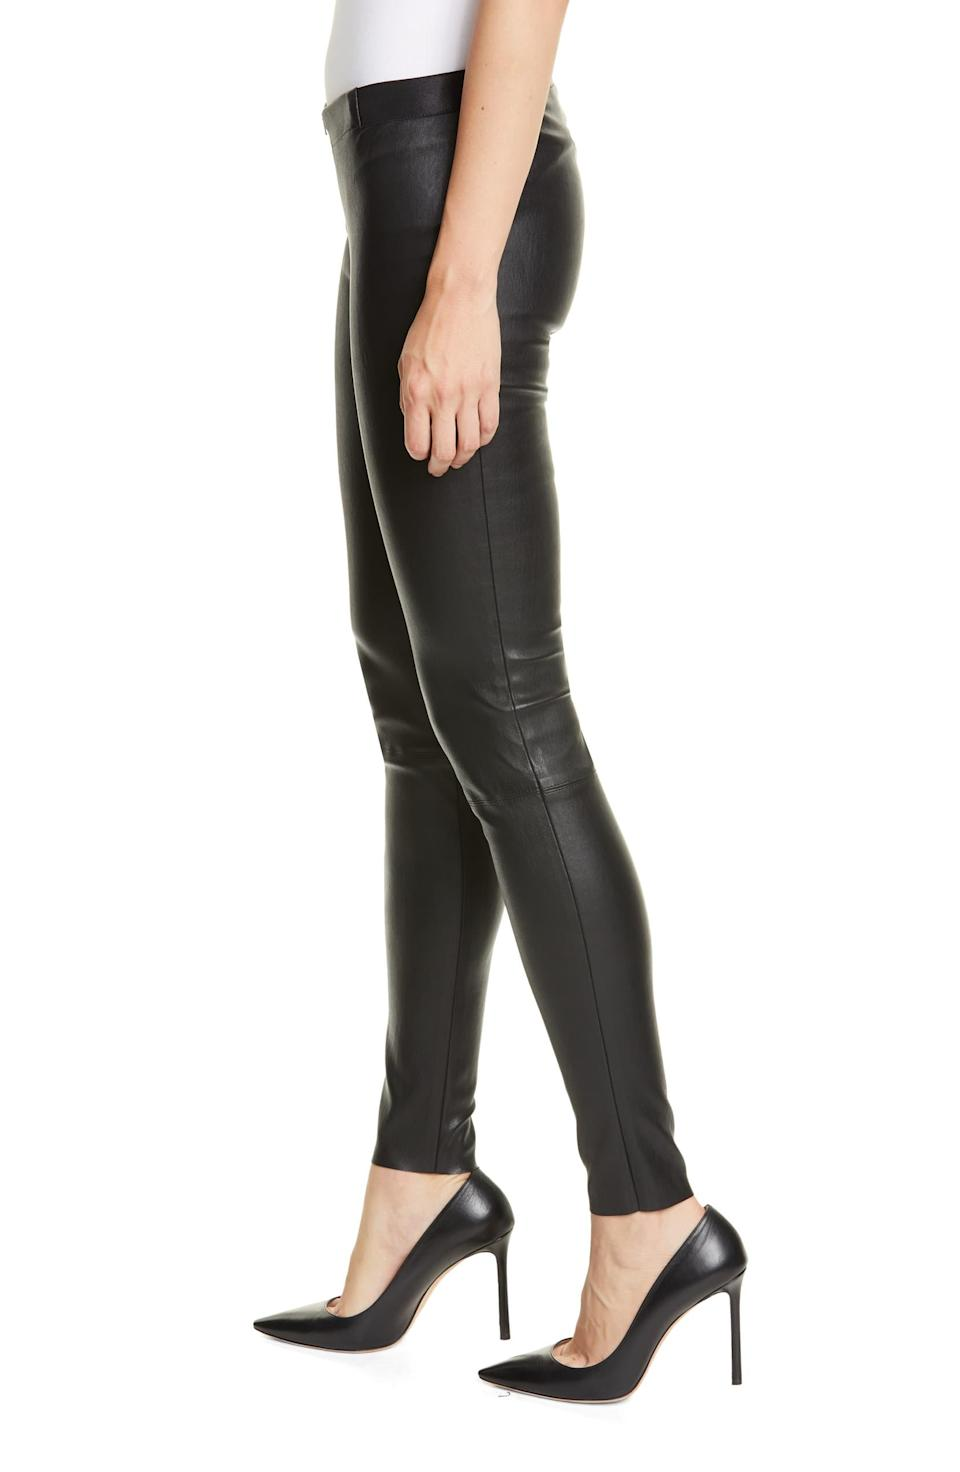 """<h3>Alice + Olivia: The Leather Leggings<br></h3><br>Legit leather leggings do not come cheap, but those who are devoted to the style and willing to fork over the cash seem like very happy campers to us. <br><br><strong>The hype:</strong> 4.3 out of 5 stars, 27 reviews on Nordstrom.com<br><br><strong>What they're saying:</strong> """"These are beautiful leather leggings — not too 'tough/motorcycle' and not too <em>Catwoman</em>. I receive lots of compliments every time I wear them. The leather is super soft. They are pretty stretchy, so if you're in between sizes, order a size down. I'm 5' 8"""" and generally wear a 4, and the 2 in these work very well. Great price for leather leggings as well."""" — akings, Nordstrom.com reviewer<br><br><strong>Alice + Olivia</strong> Leather Leggings, $, available at <a href=""""https://go.skimresources.com/?id=30283X879131&url=https%3A%2F%2Fshop.nordstrom.com%2Fs%2Falice-olivia-leather-leggings%2F3337019%2Ffull"""" rel=""""nofollow noopener"""" target=""""_blank"""" data-ylk=""""slk:Nordstrom"""" class=""""link rapid-noclick-resp"""">Nordstrom</a>"""